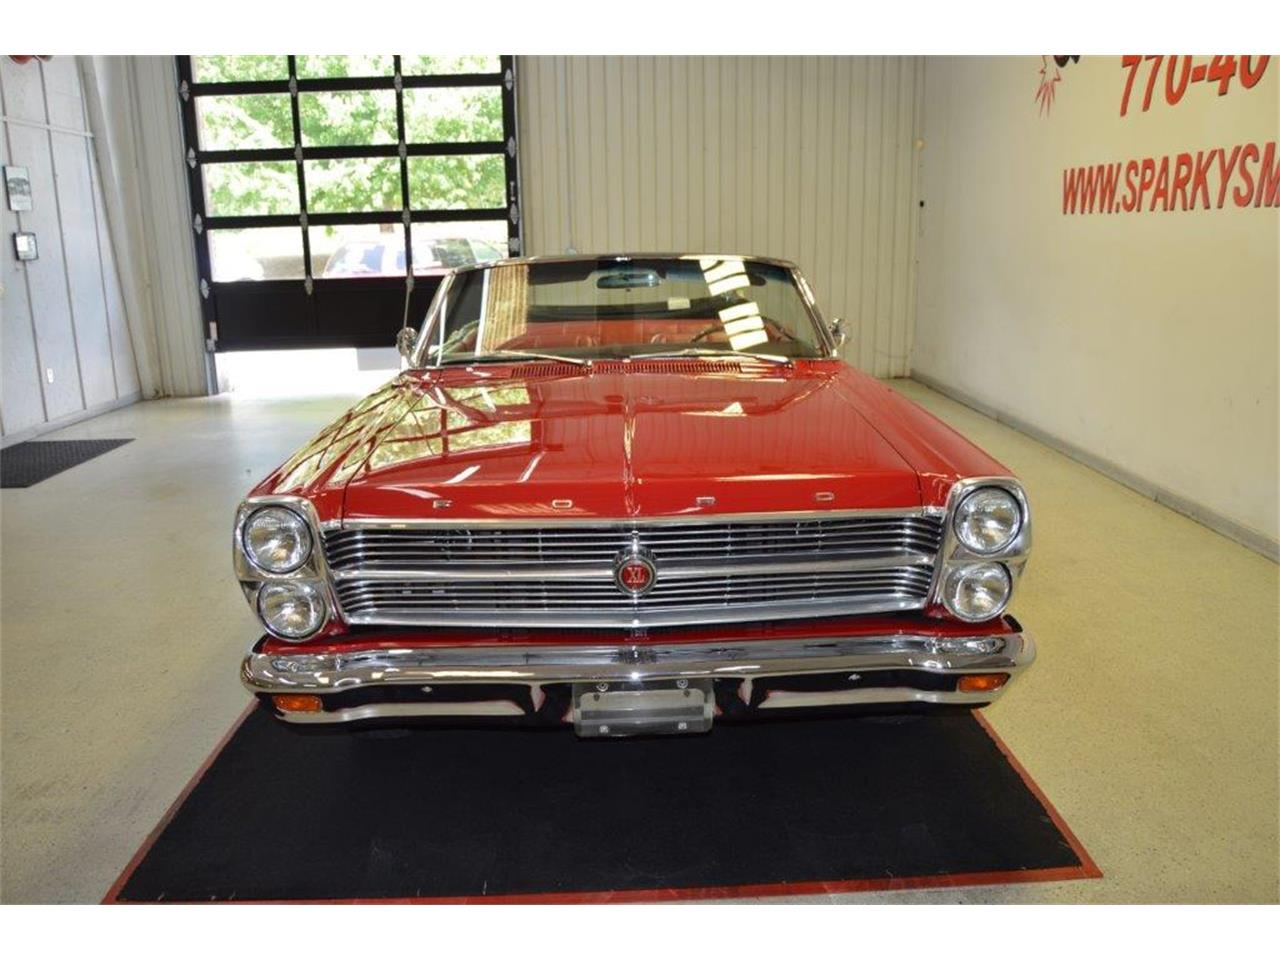 Large Picture of Classic '66 Fairlane 500 XL located in Georgia - $39,900.00 Offered by Sparky's Machines - Q7MJ